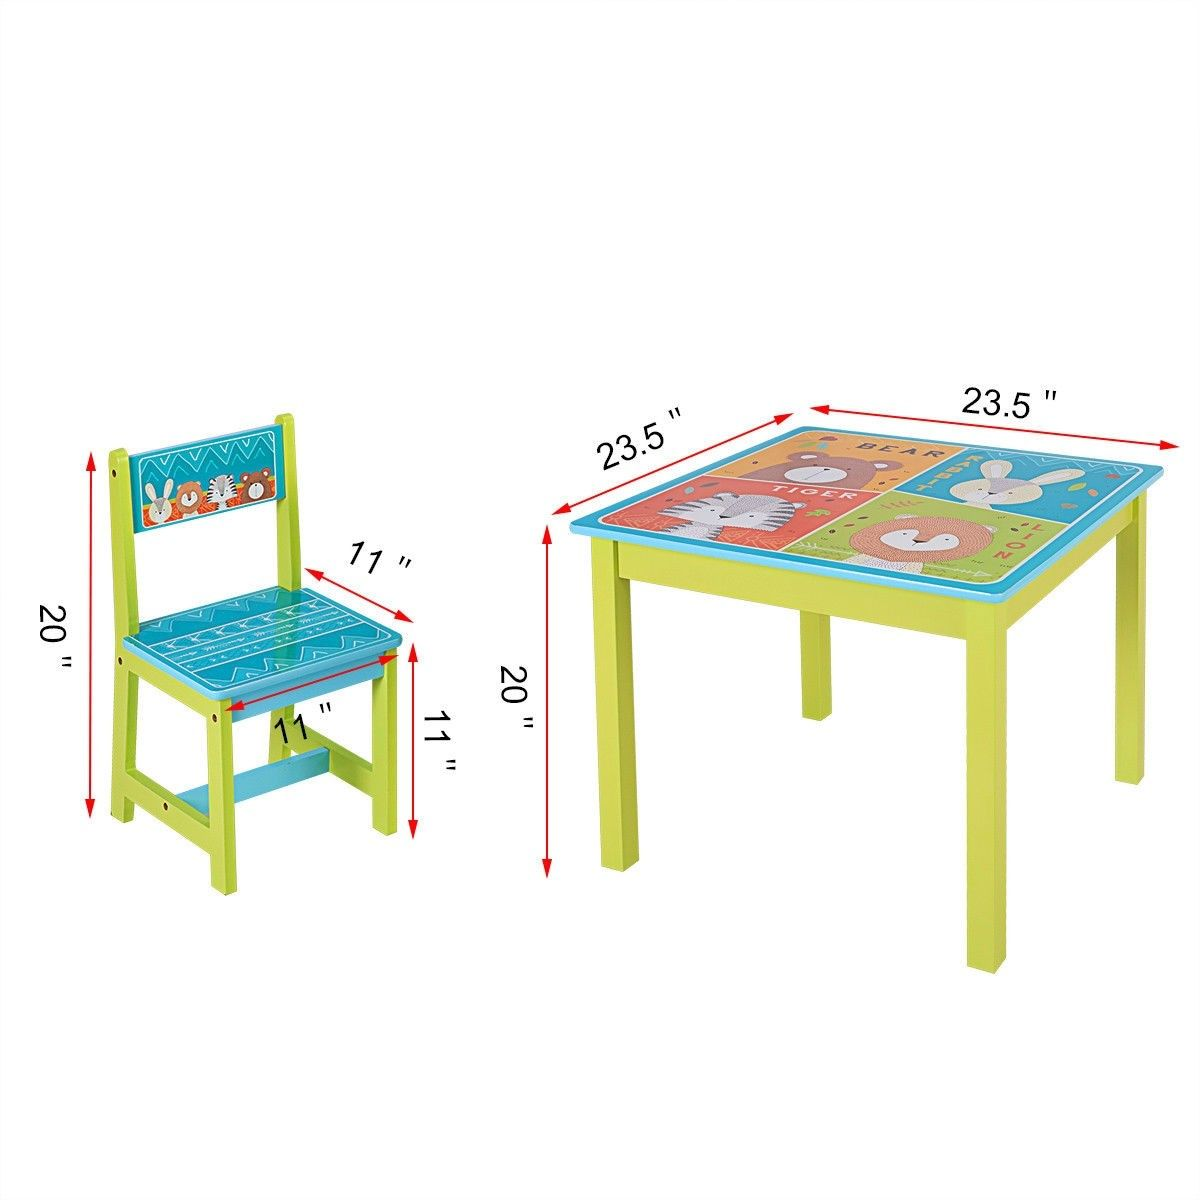 Kids Table And Chairs Set For Toddler Baby Furniture With Cartoon Pattern 62 95 Free Shipping Http Kids Table And Chairs Kids Table Set Table And Chair Sets